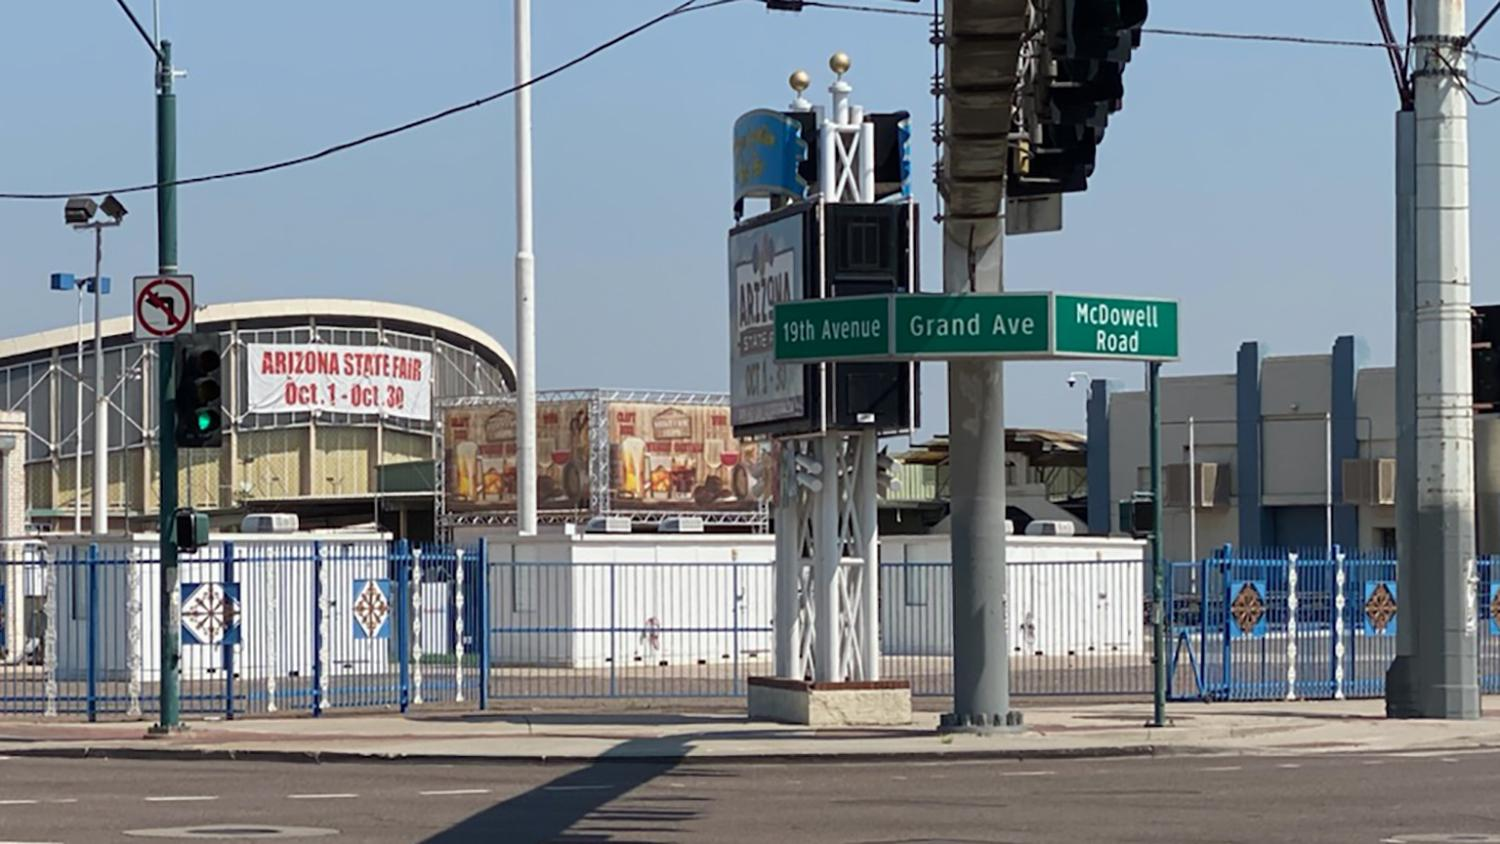 the intersections of Grand and 19th avenues and McDowell Road